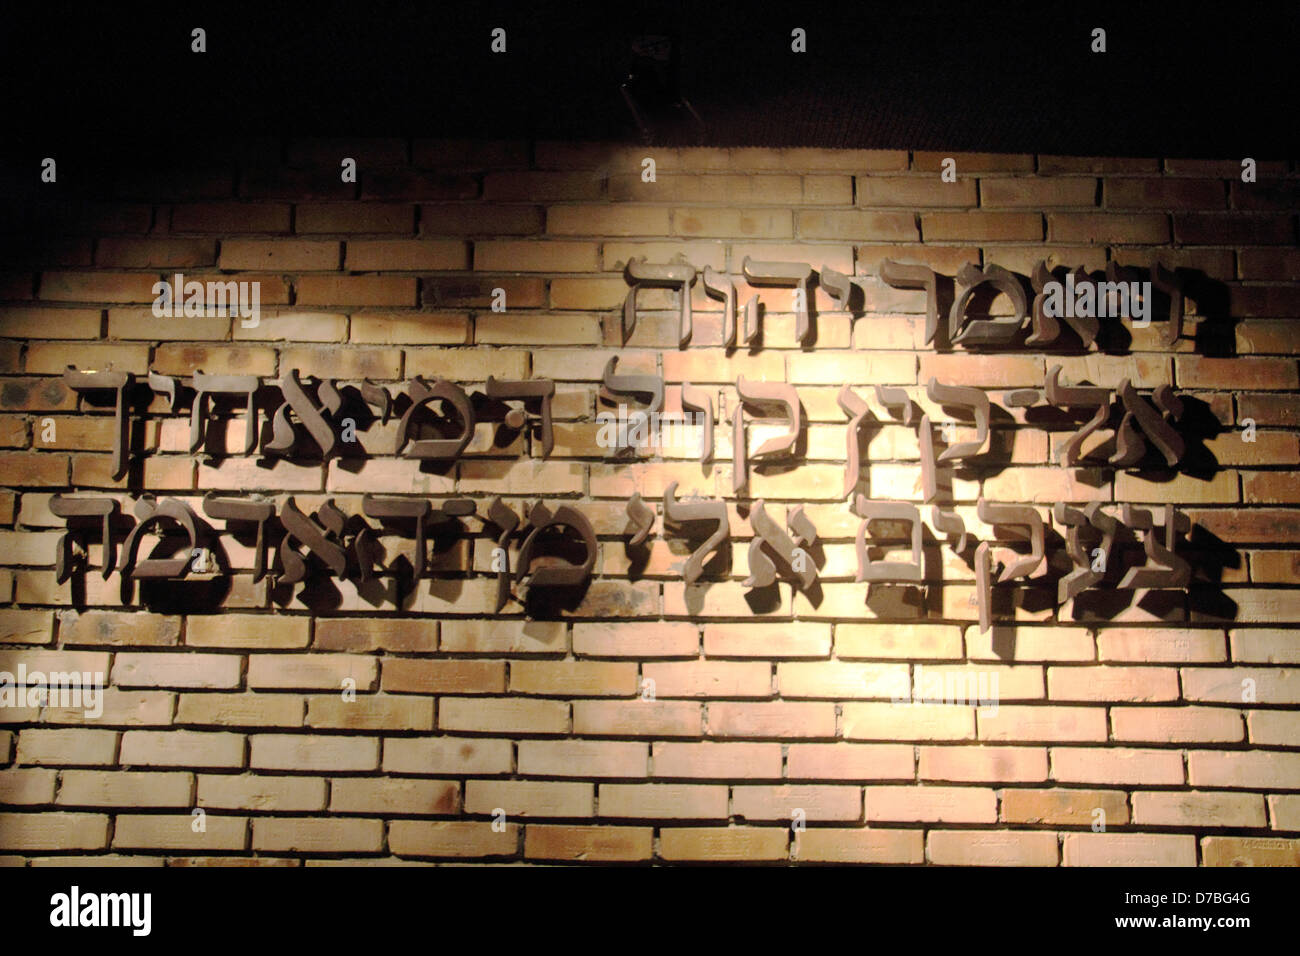 Biblical Hebrew proverb from Genesis in the Jewish Memorial Hall at the museum of Auschwitz 1 Concentration Camp, - Stock Image